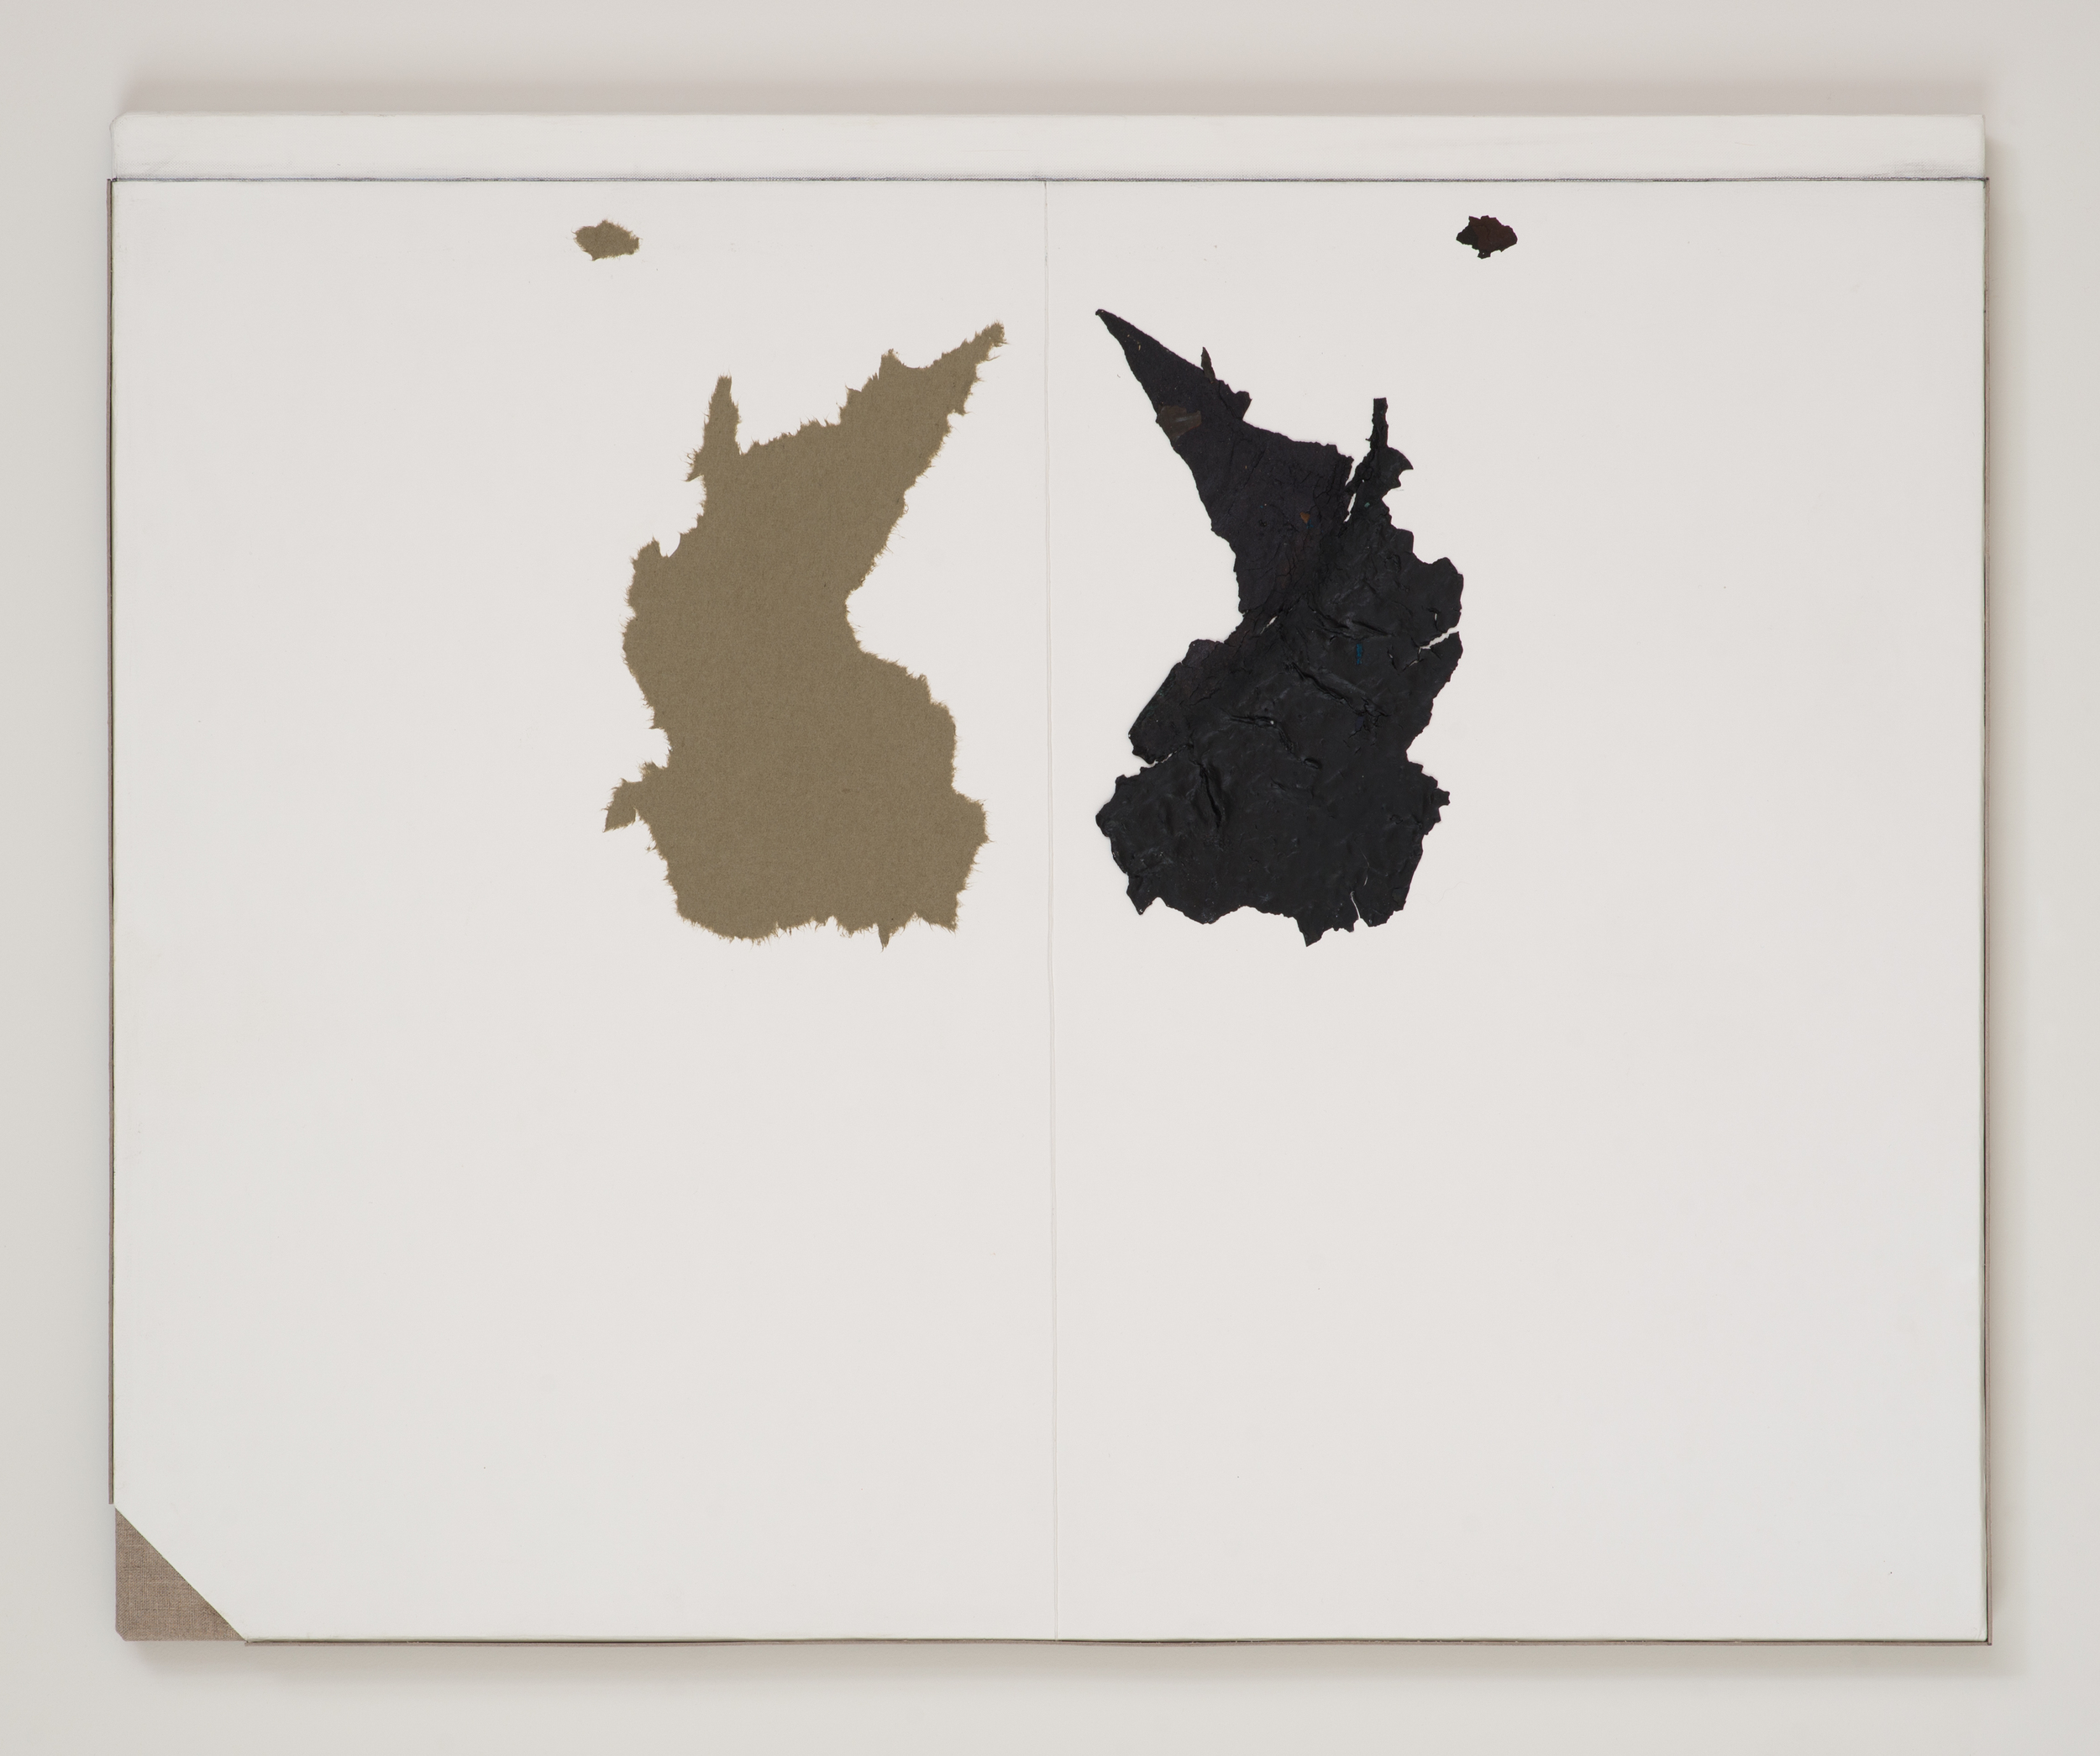 Peter Adsett, Painting number 7, Gesso, paper, paint, pasteboard and linen, 56.7 x 69.7 x 2.2cm.jpg